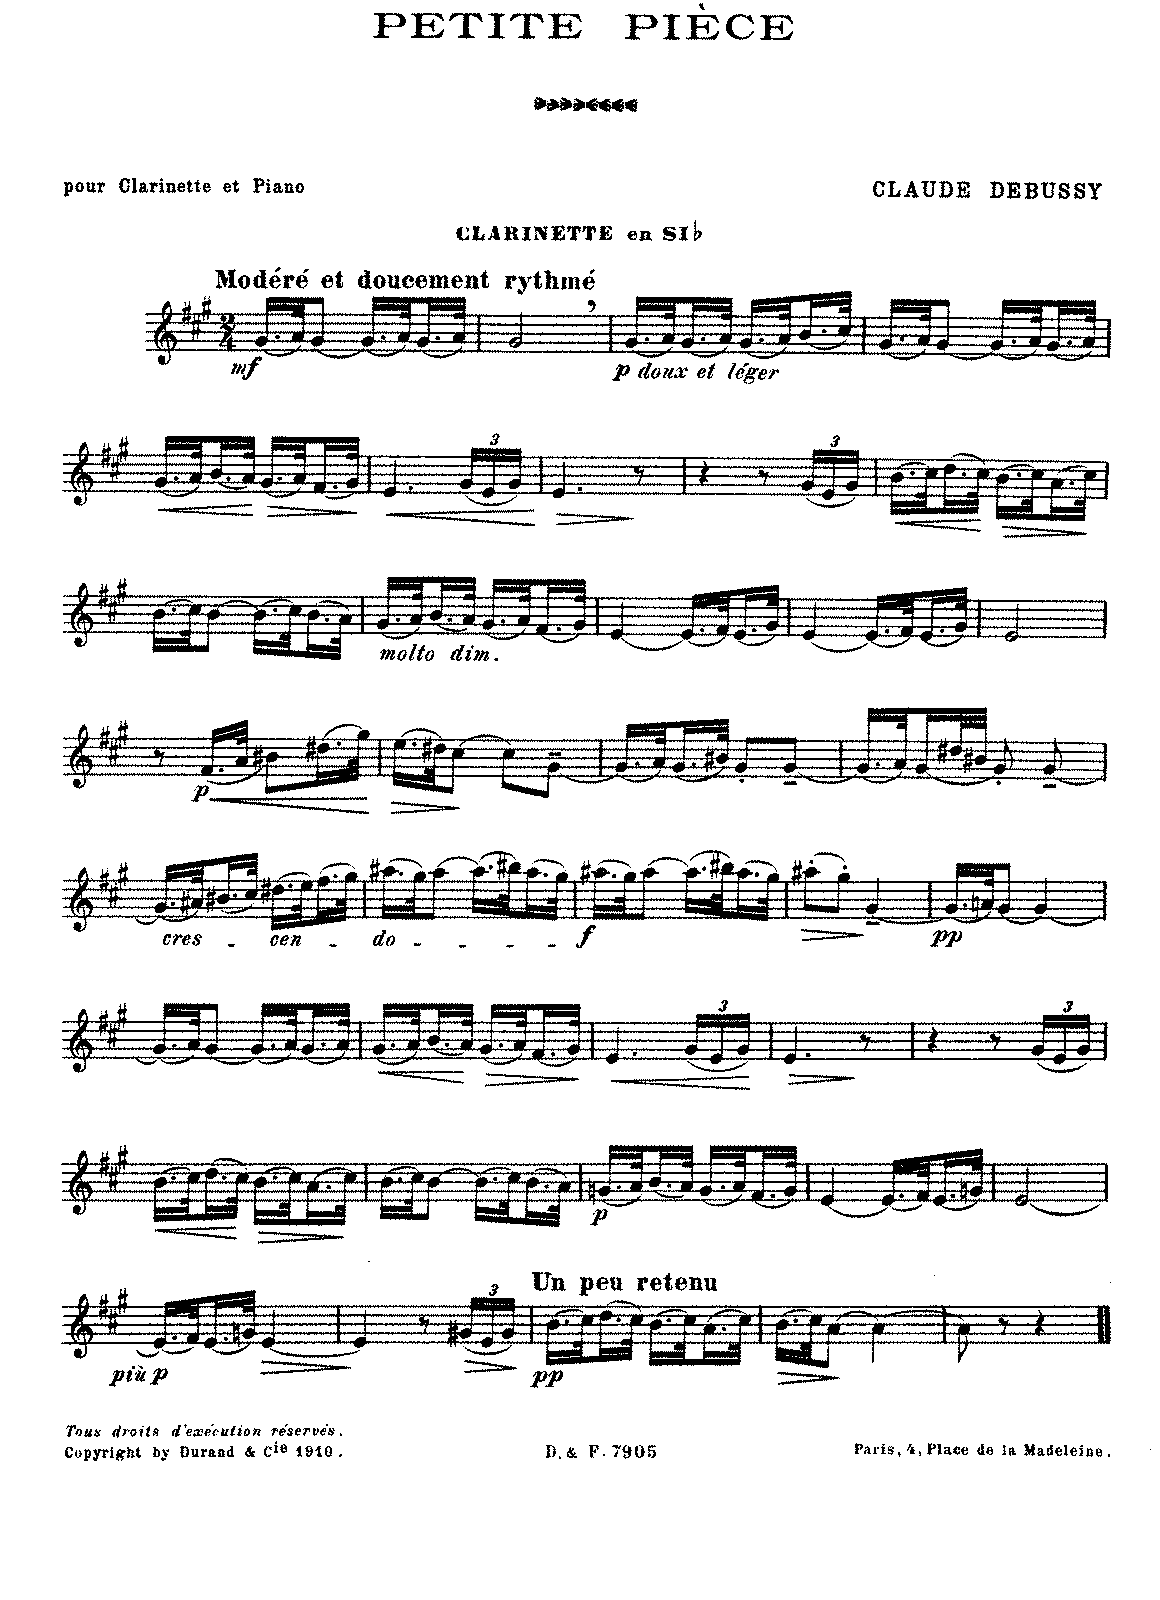 Debussy - Petite Pièce (clarinet and piano).pdf